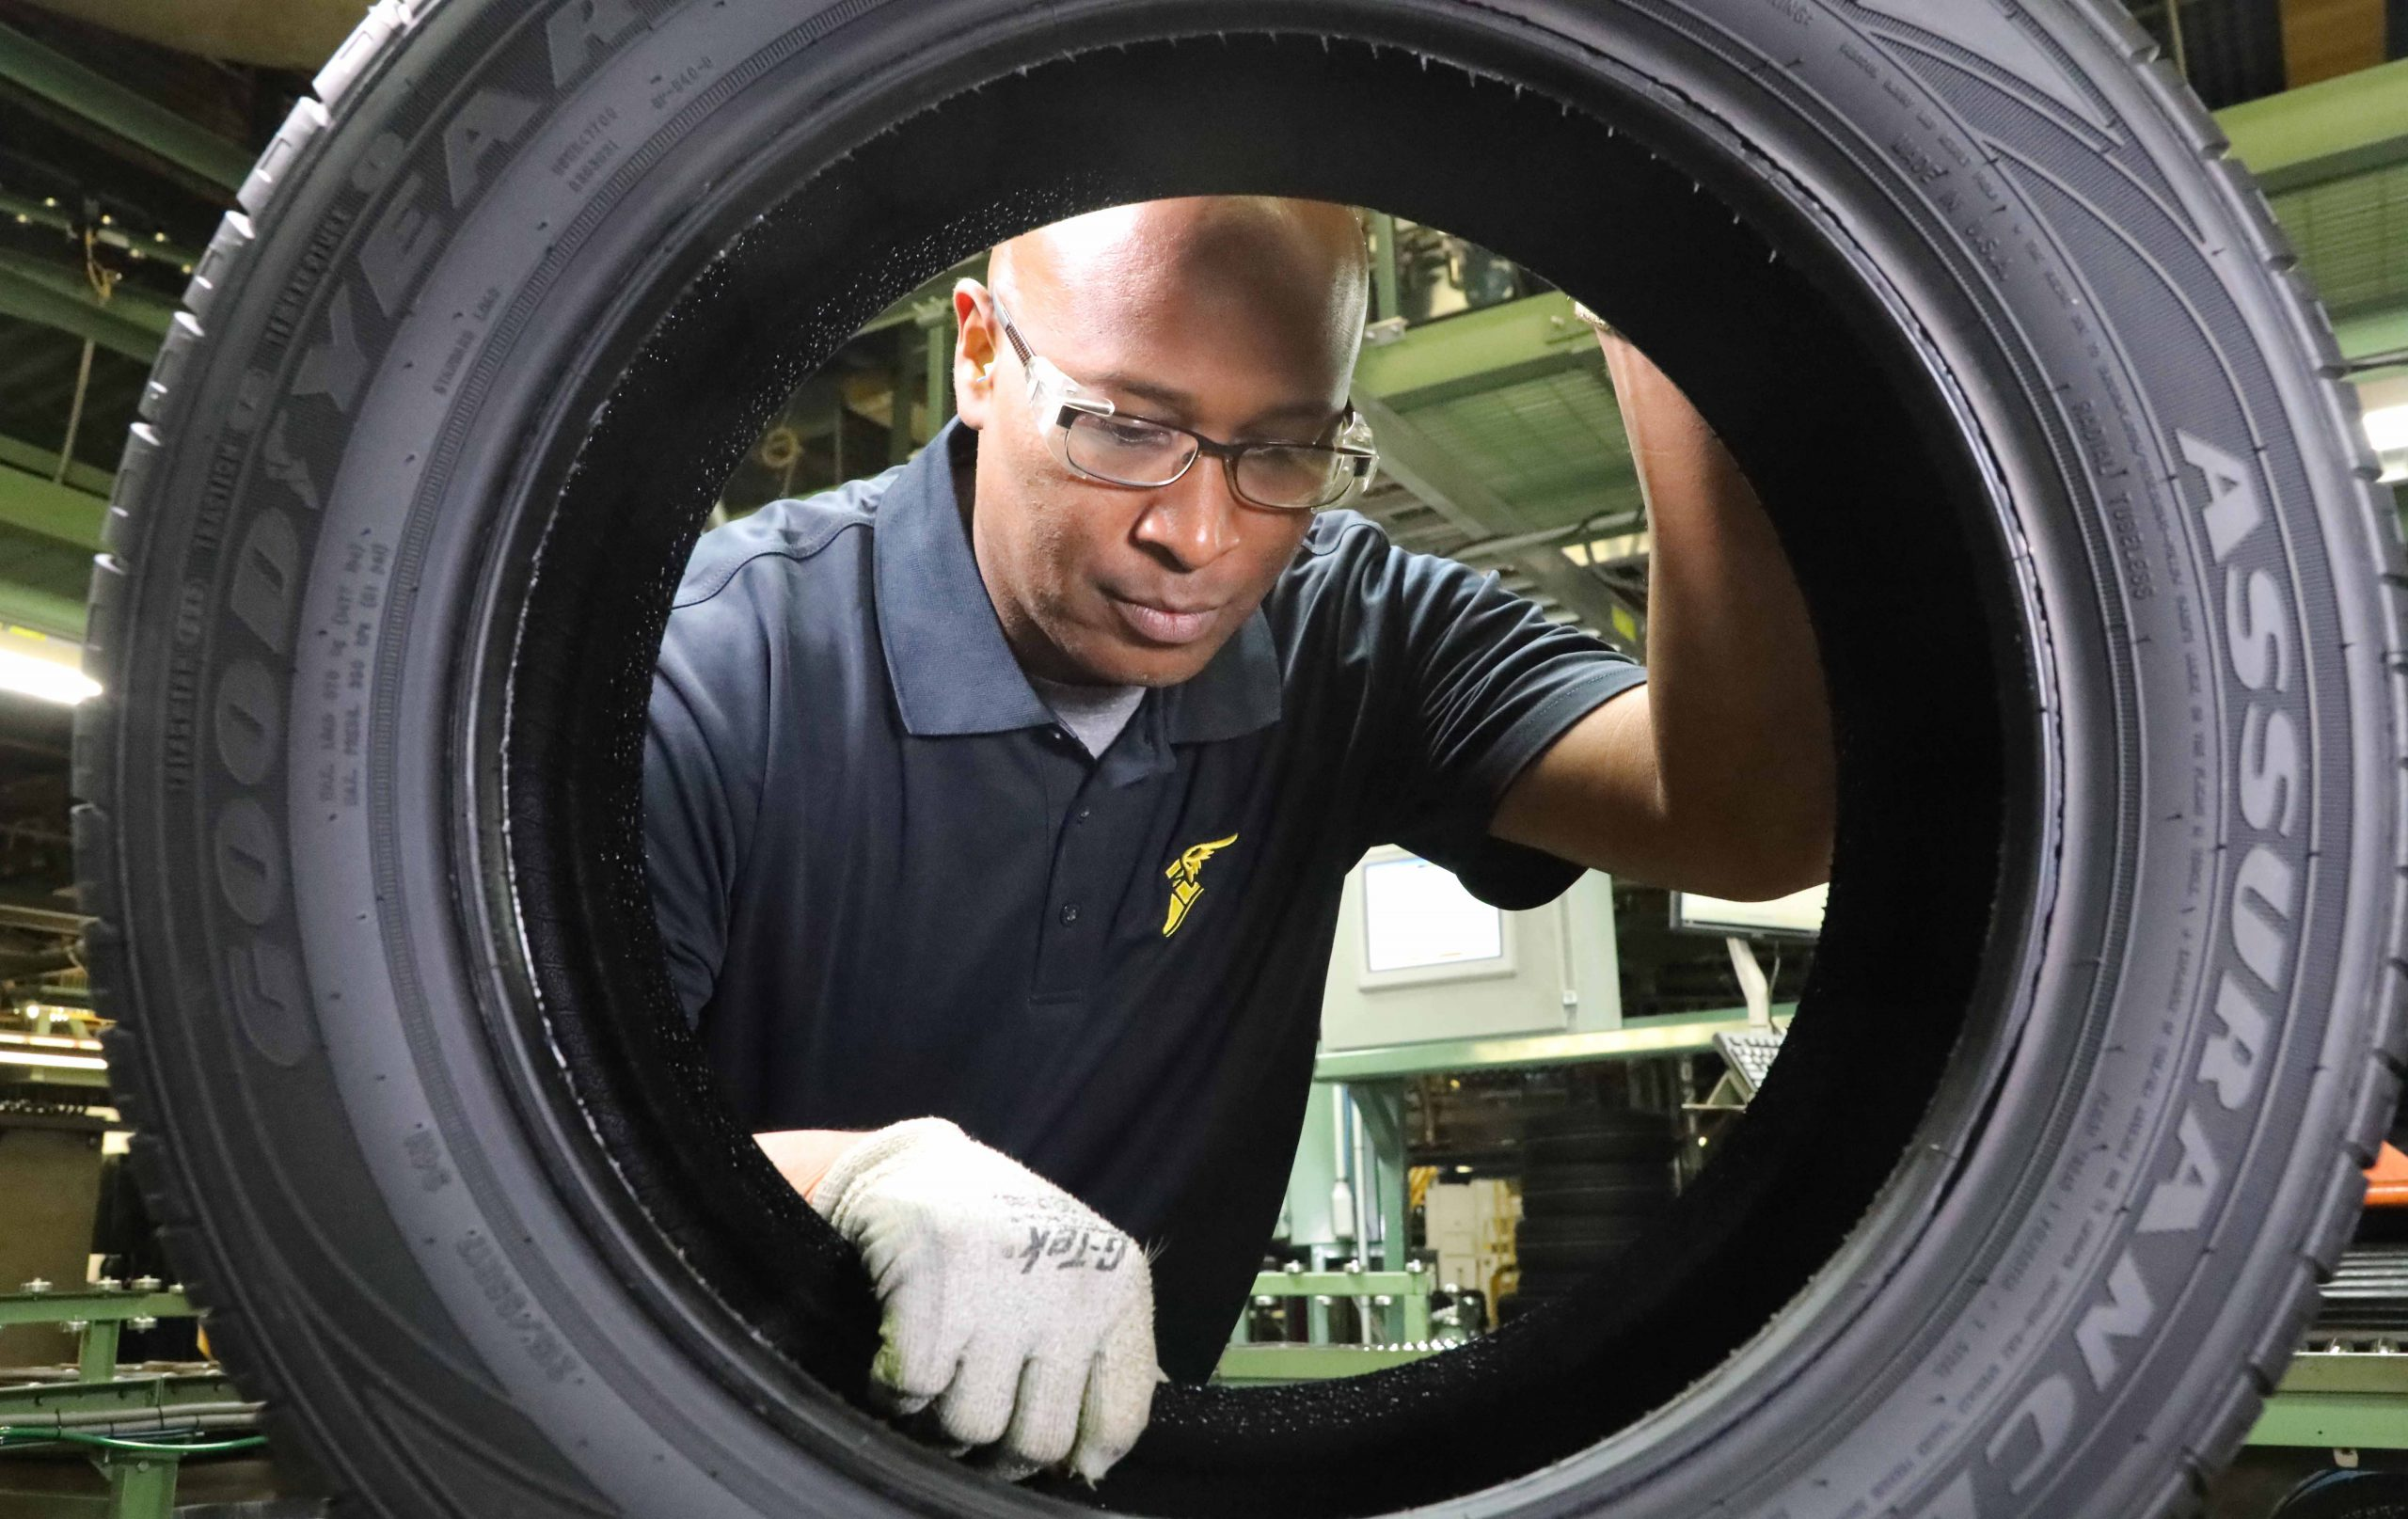 A worker handles a new vehicle tire in the Goodyear manufacturing plant